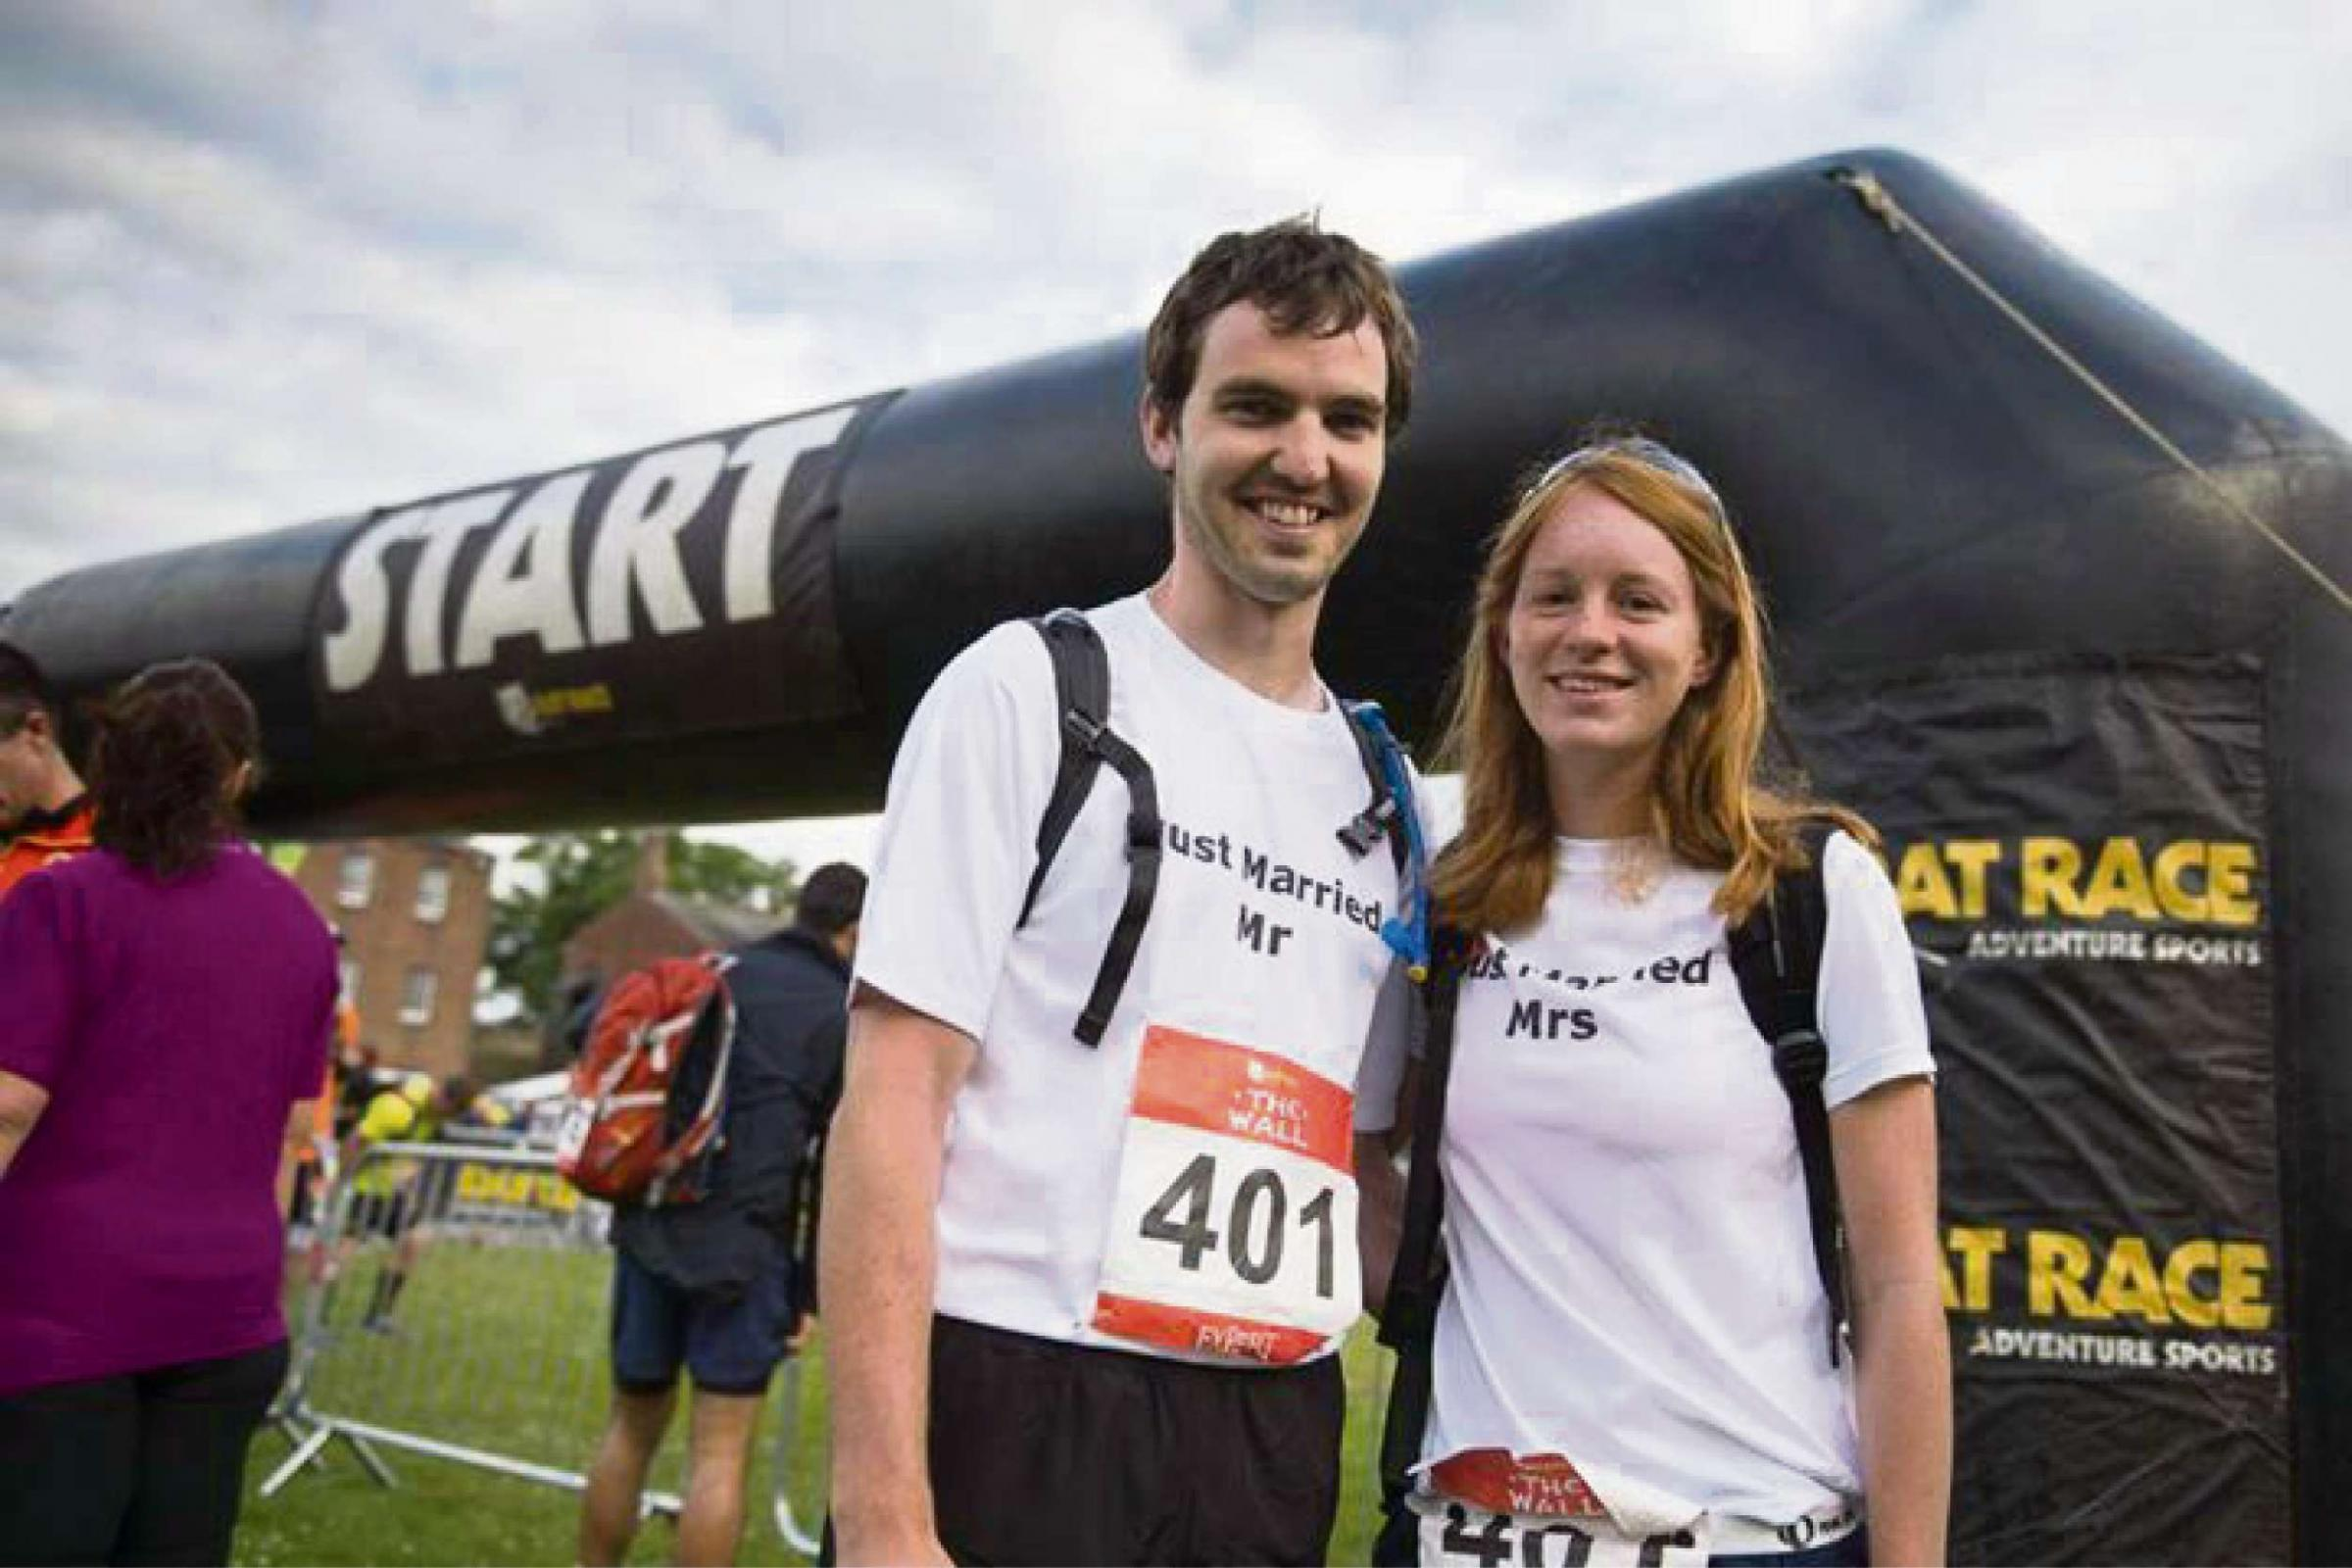 The Wall: Couple's honeymoon ultra-marathon fundraising